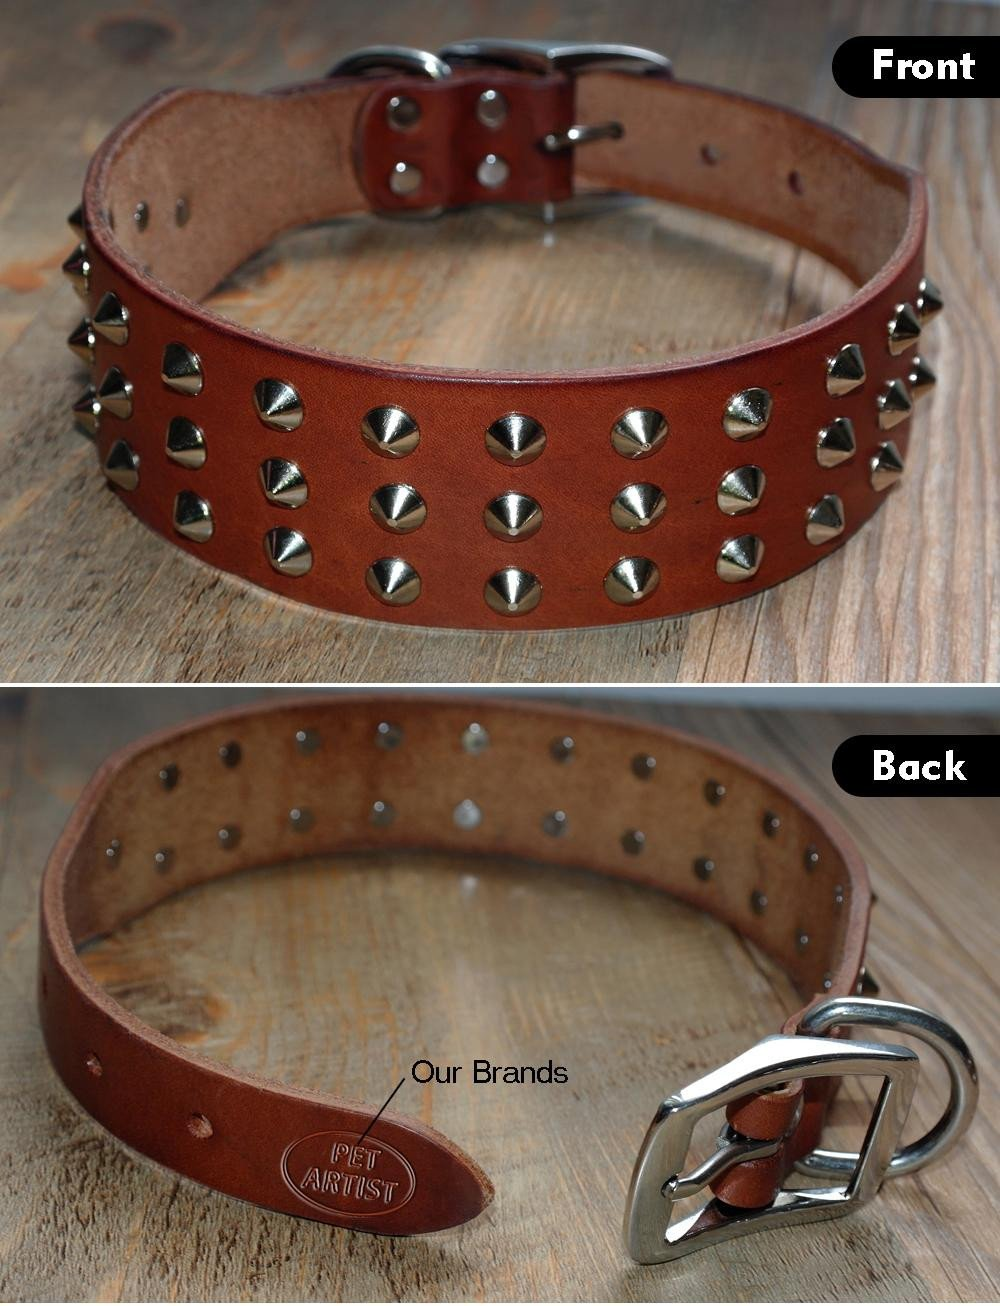 Genuine Leather Stud Dog Collar front and back